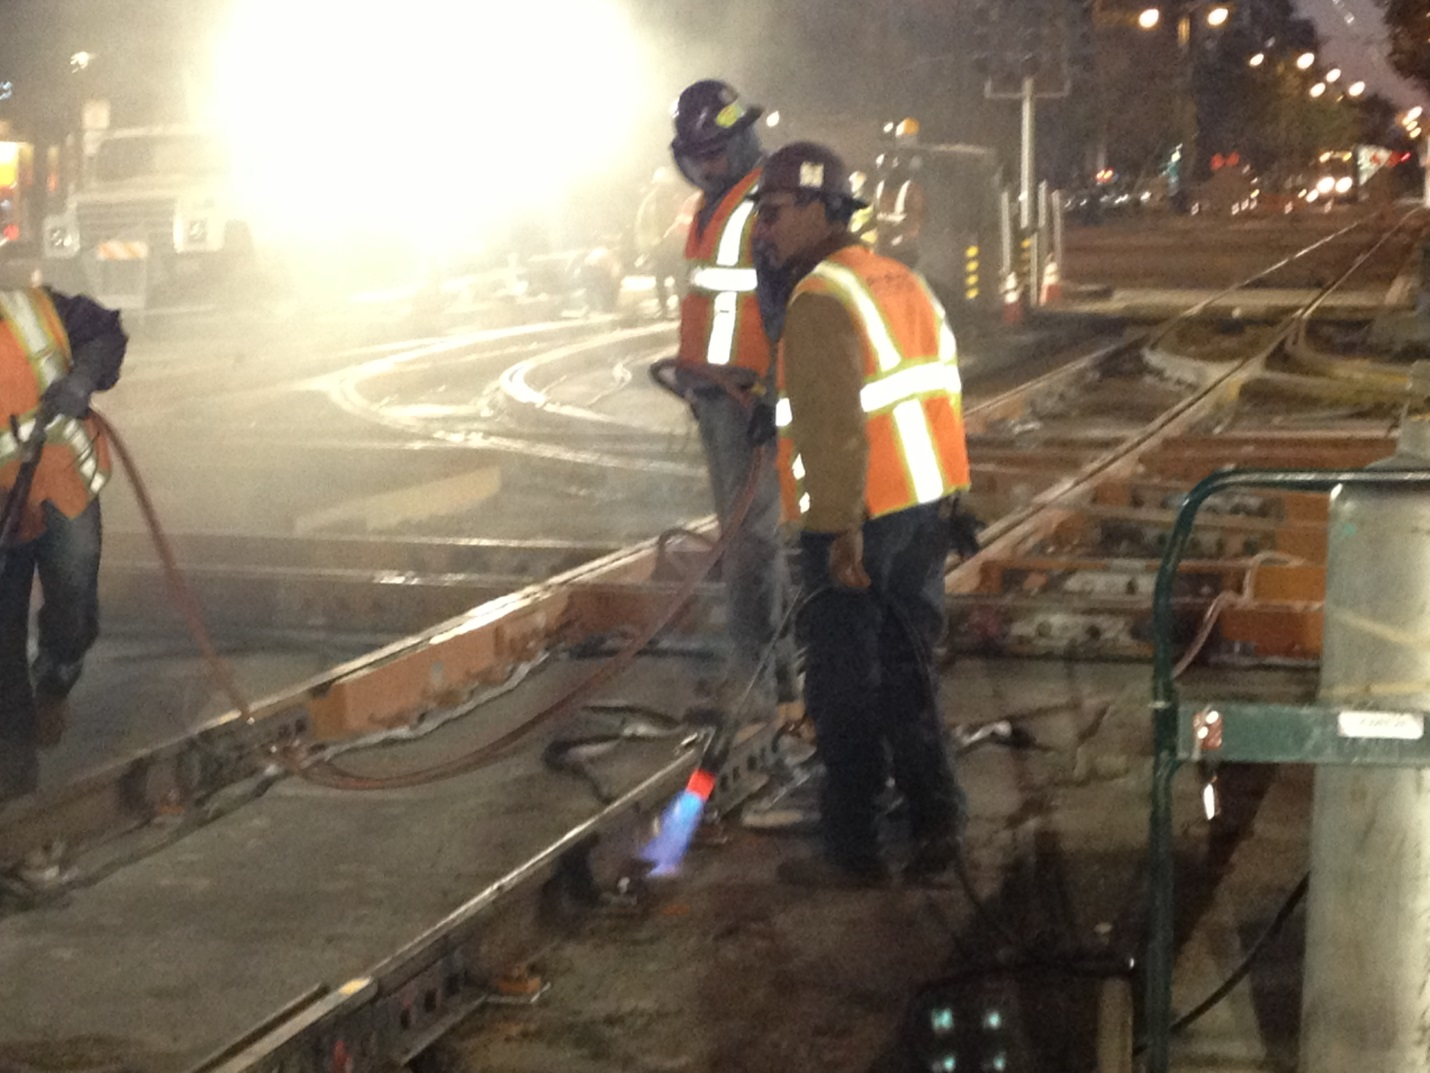 Crew members in safety vest and hard hats stand next to tracks being installed at 4th and King at night. Welding gear and safety strips are glowing